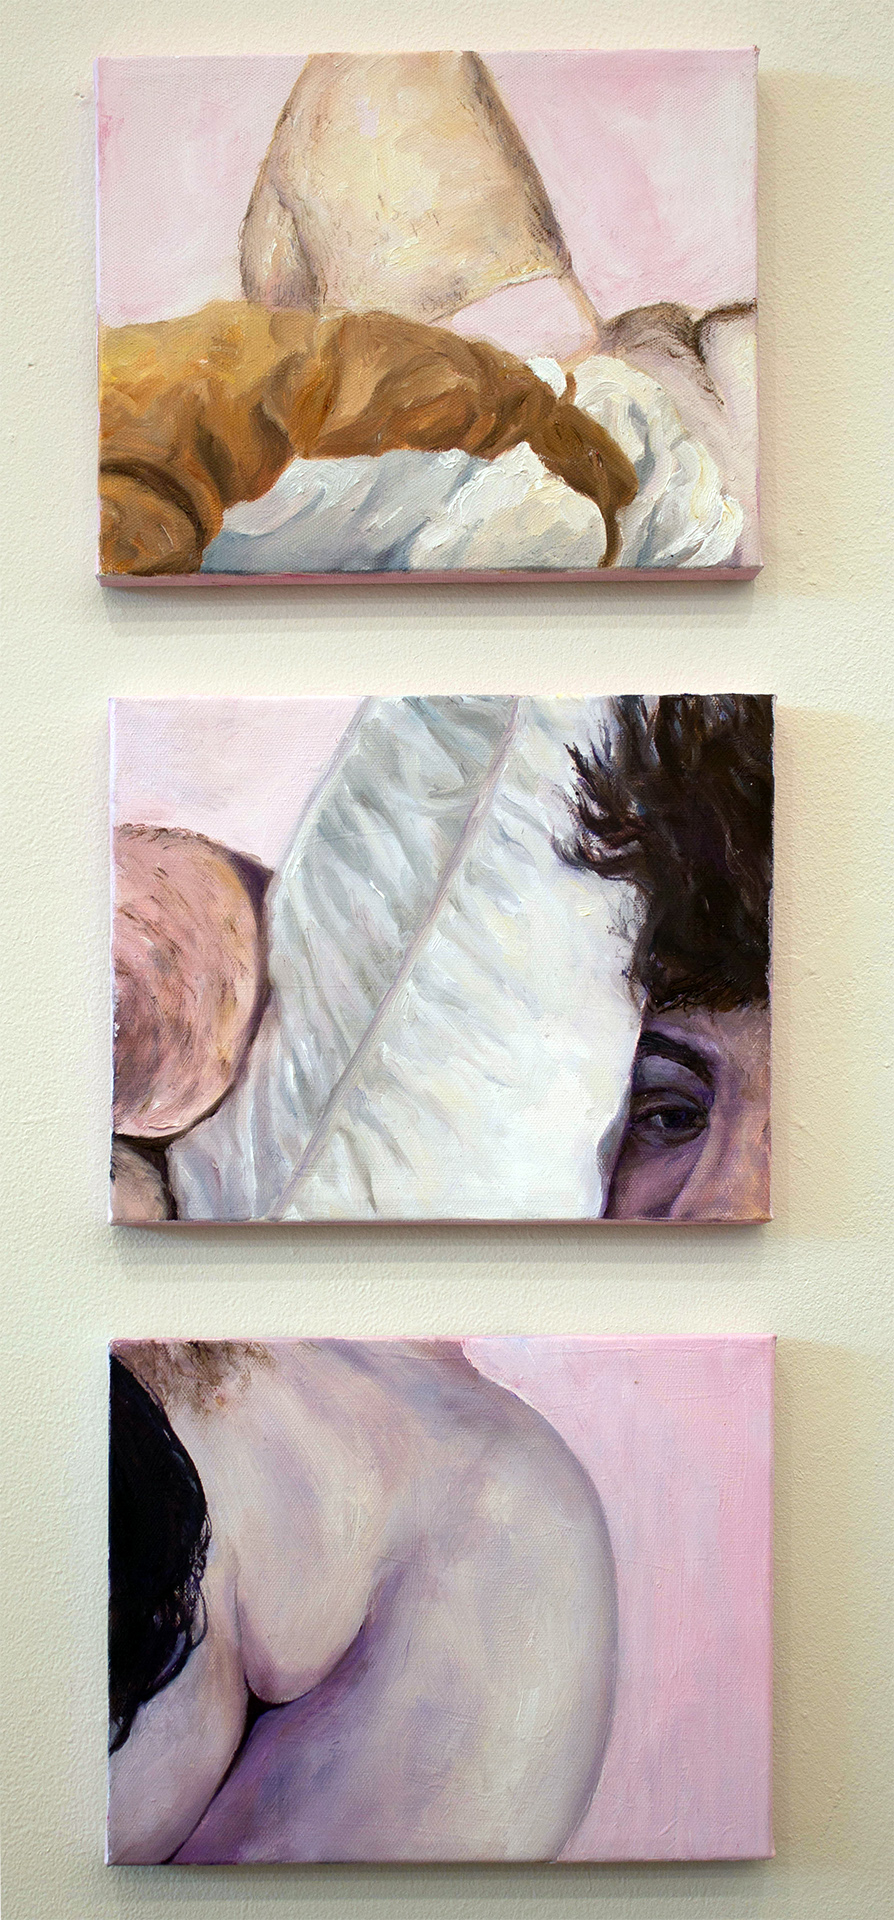 - oil on canvas8 x 10 inches each2018